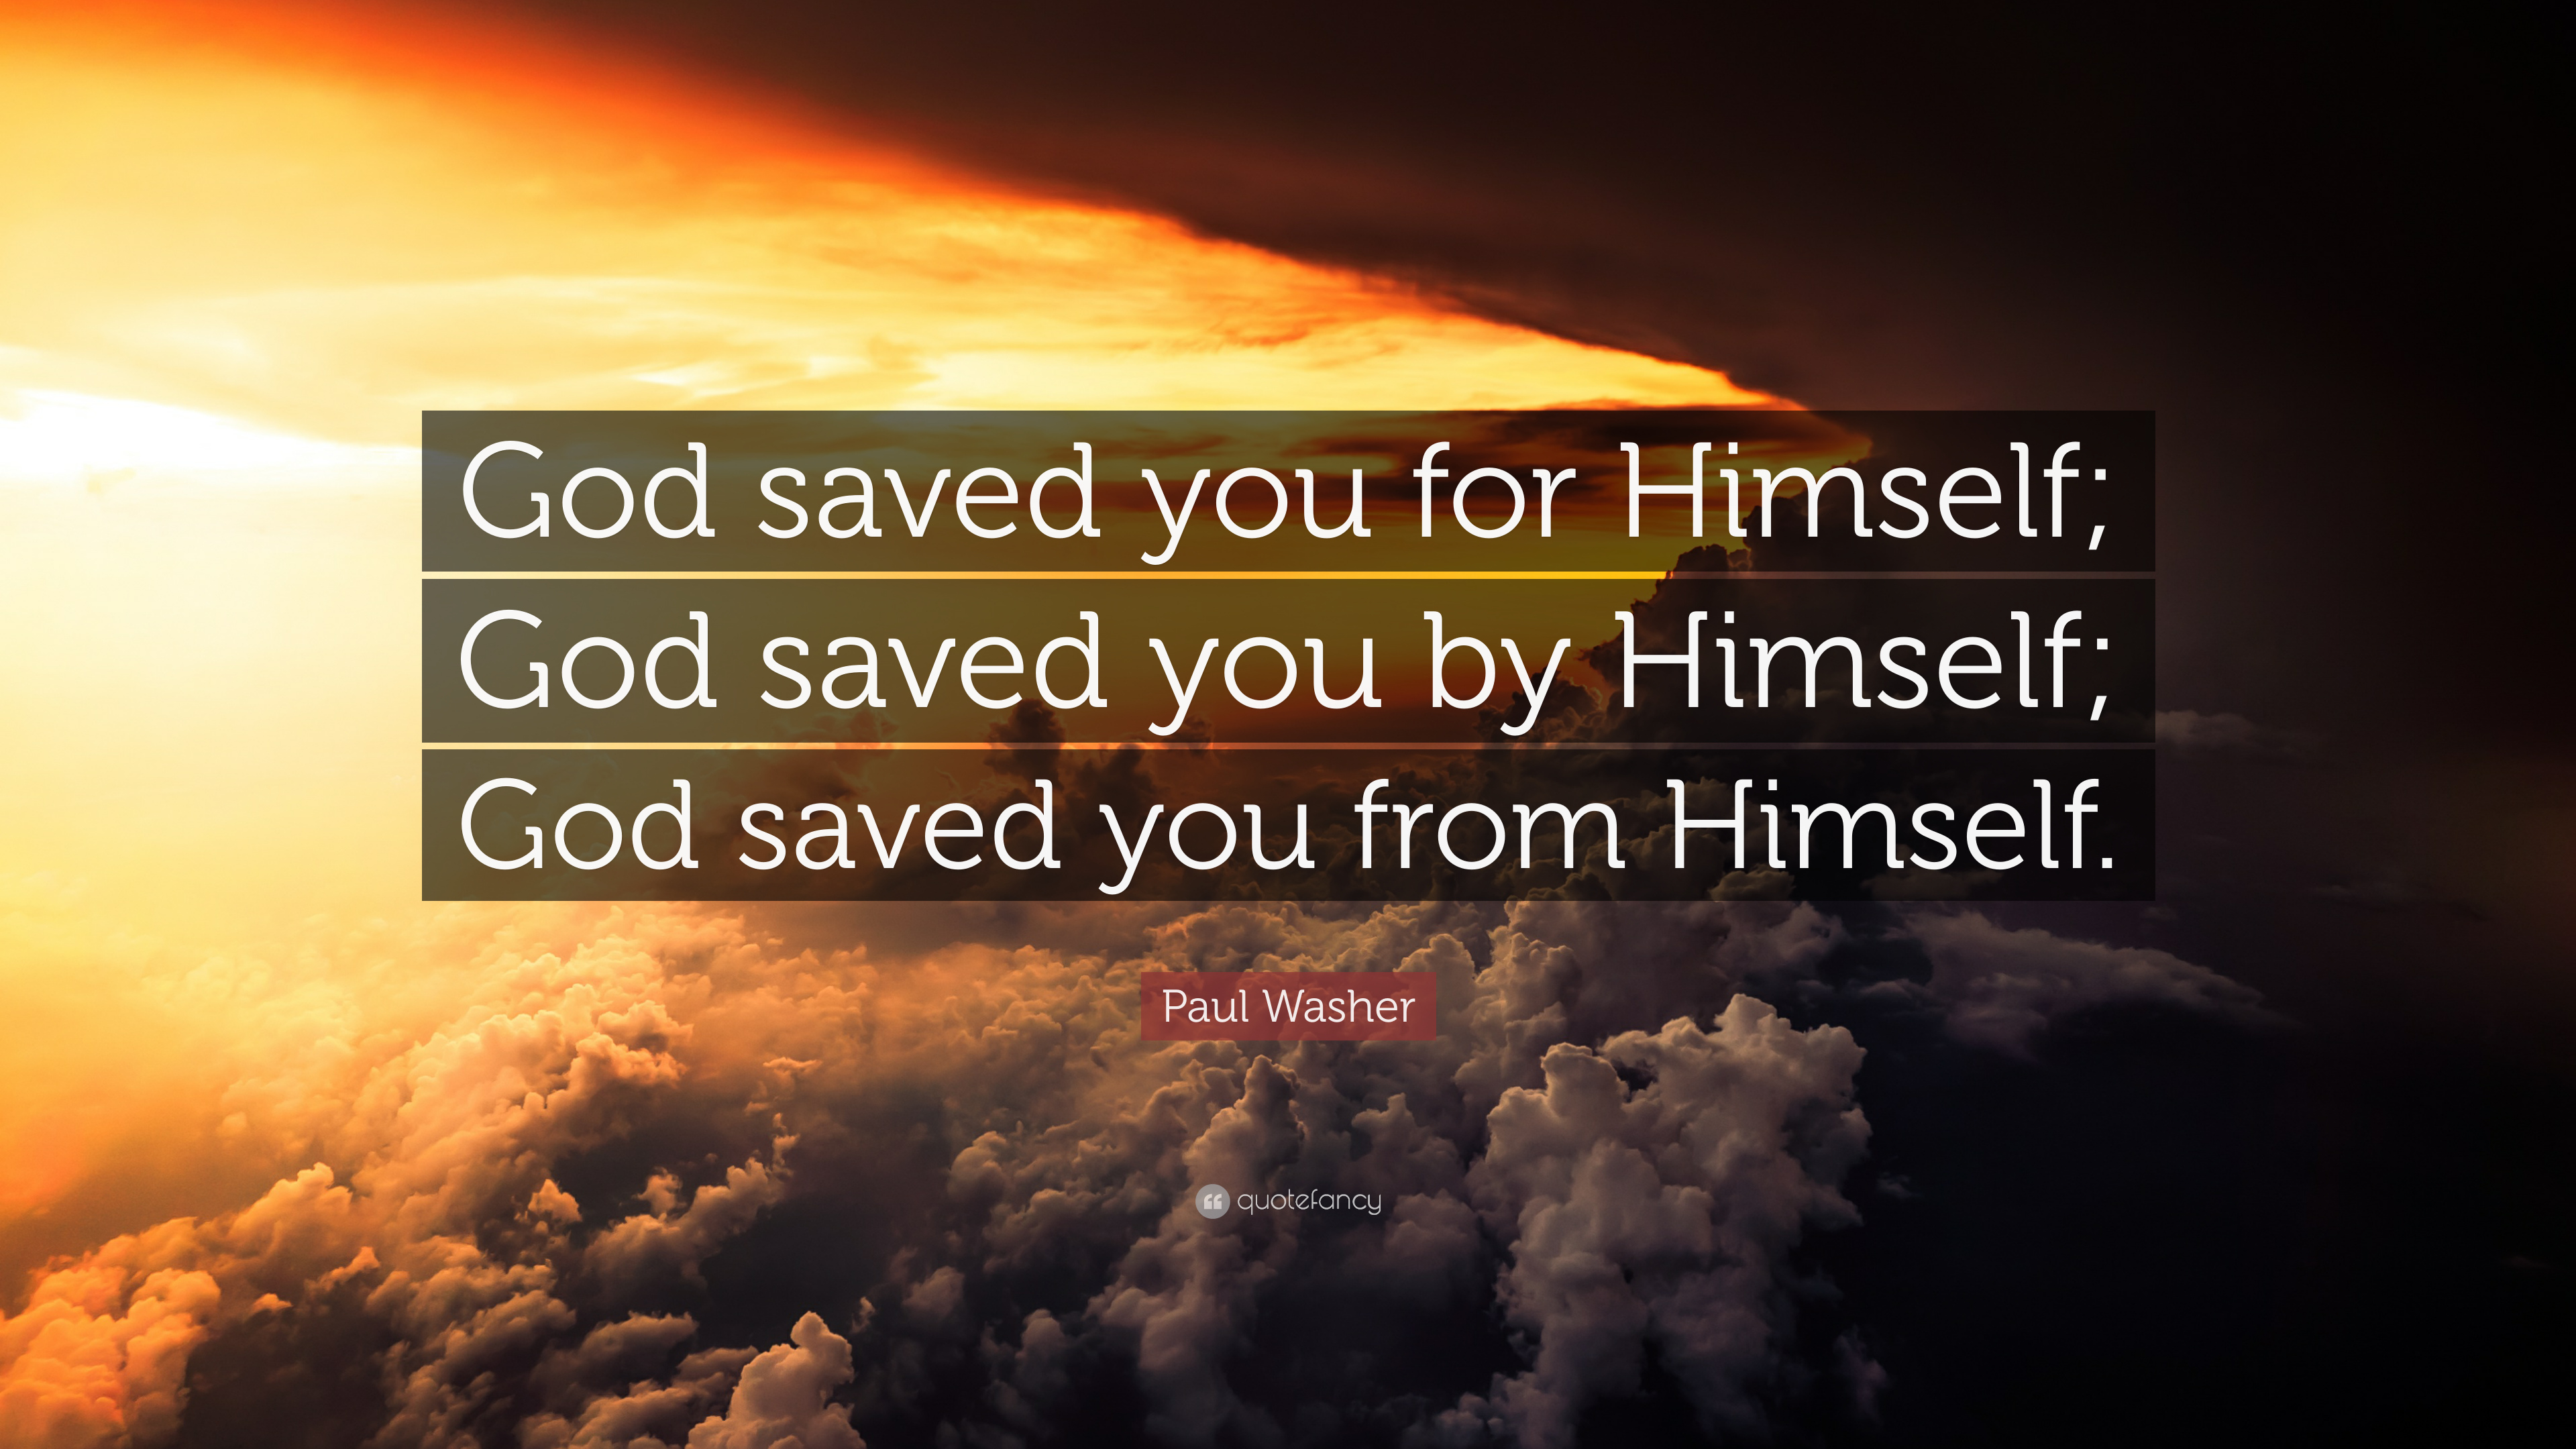 Paul Washer Quote God Saved You For Himself God Saved You By